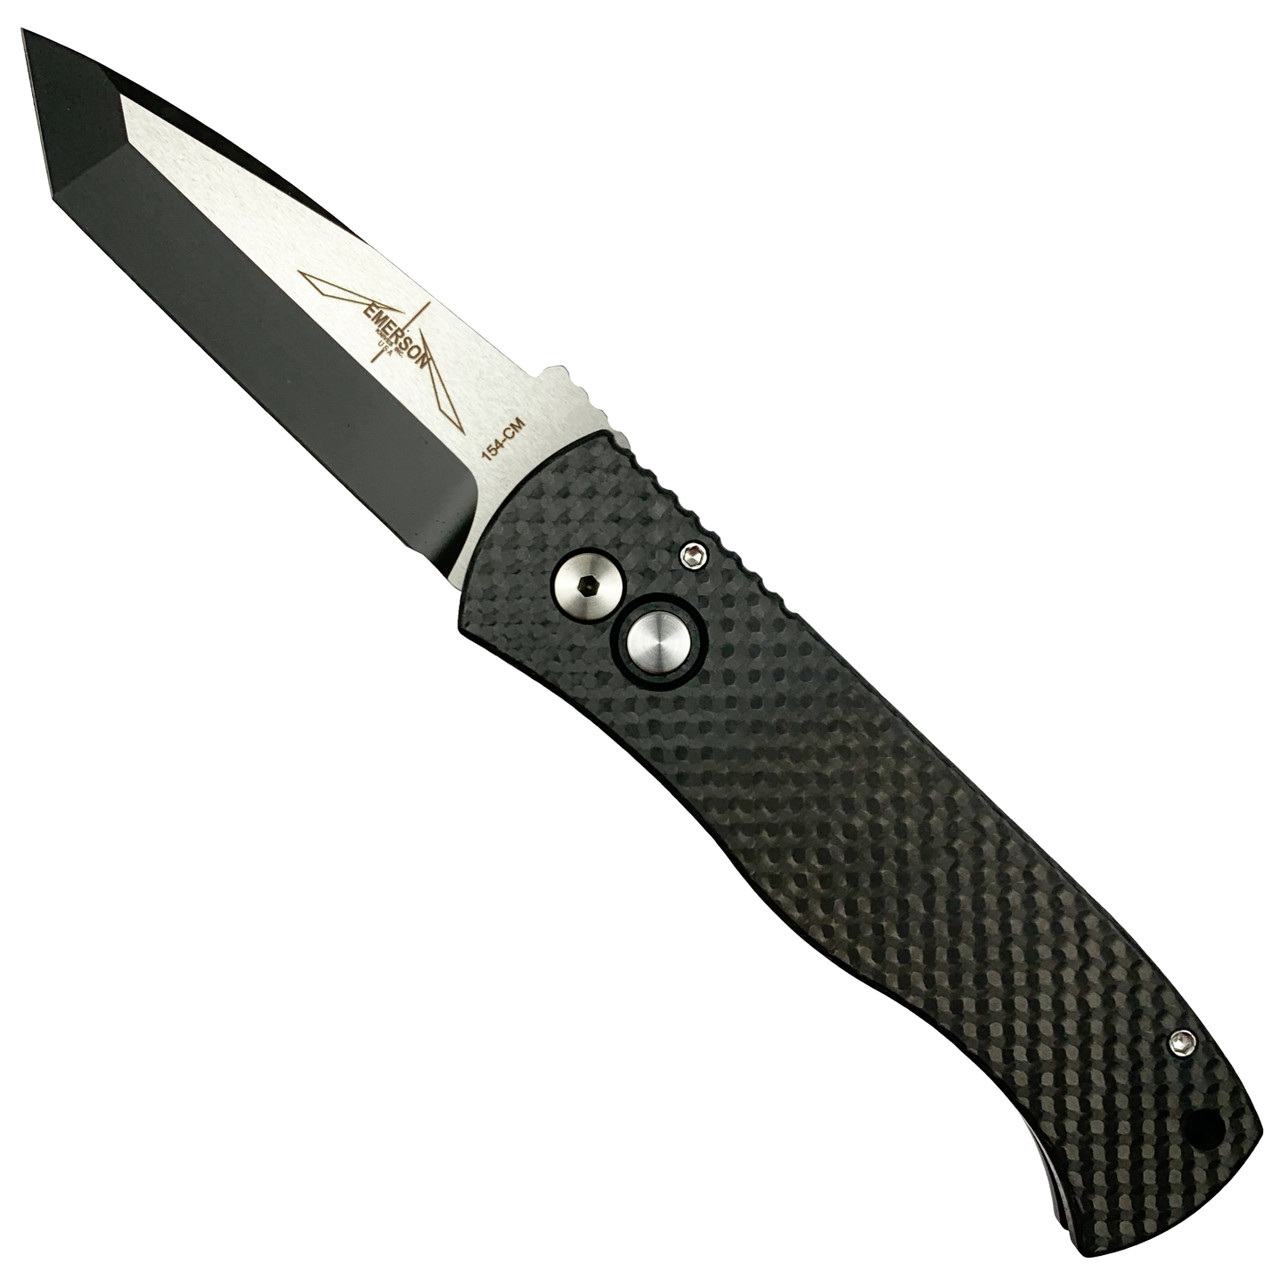 Pro-Tech Emerson CQC-7 Tanto Carbon Fiber Auto Knife, Black/Satin Blade